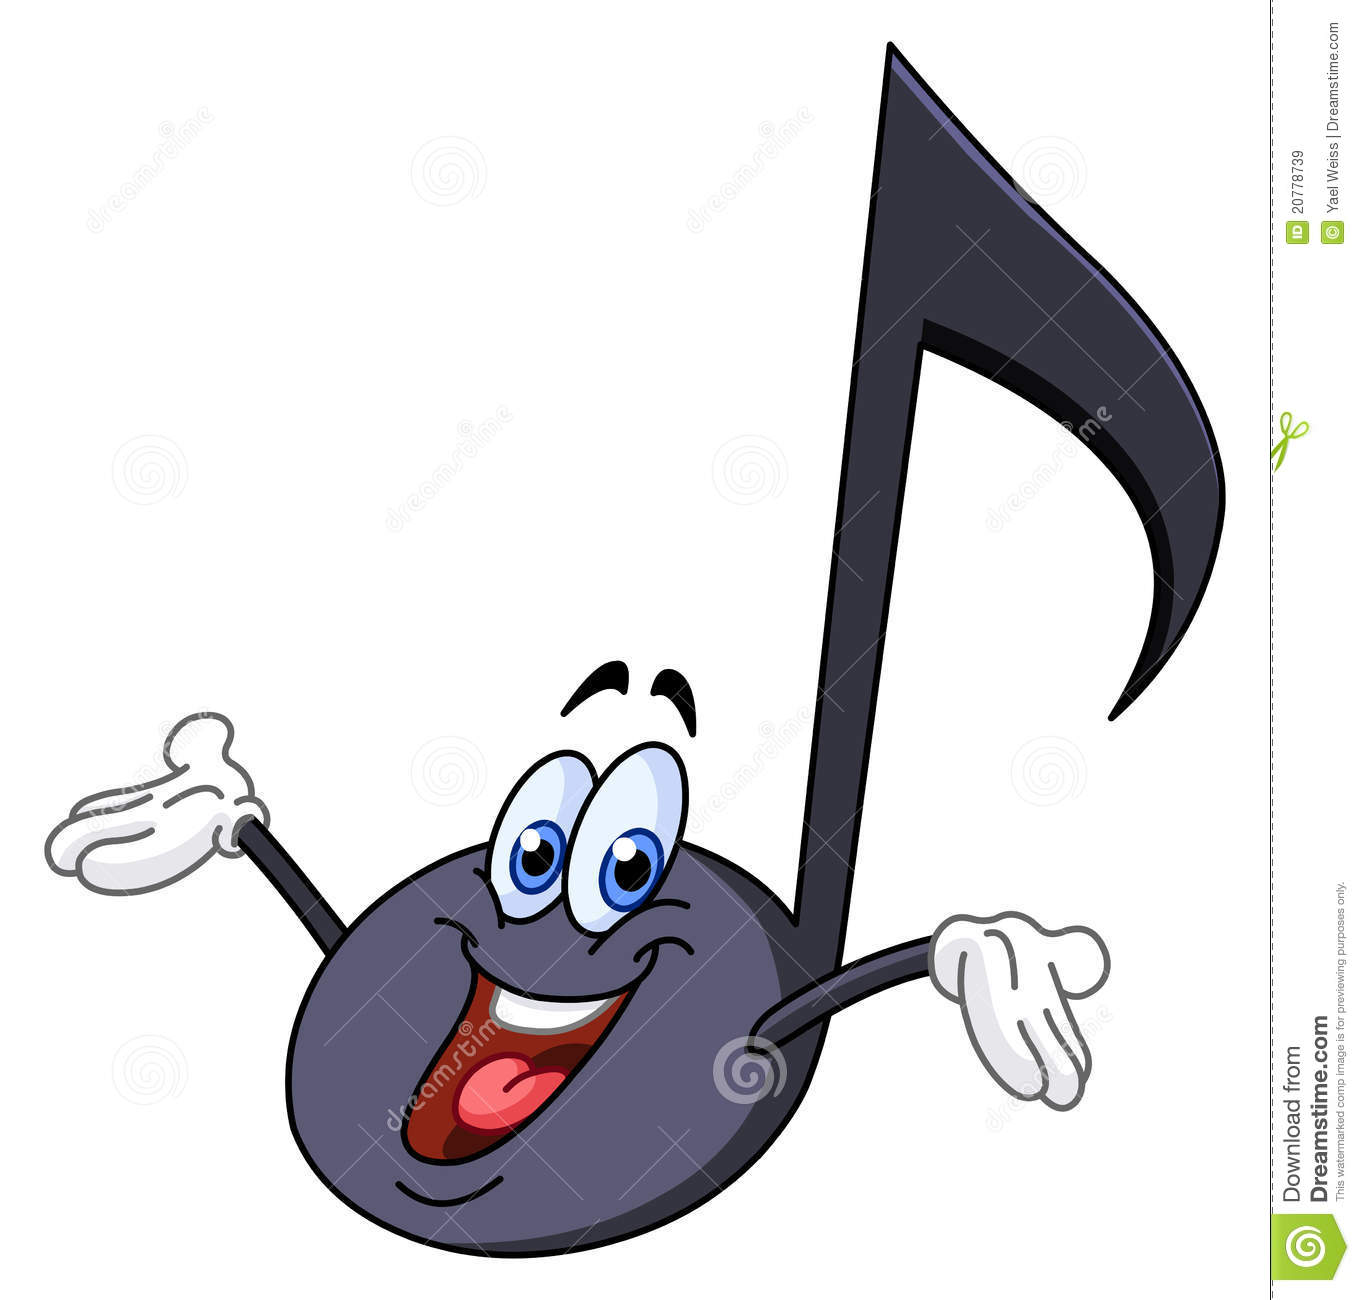 Music Note Cartoon Royalty Free Stock Images - Image: 20778739